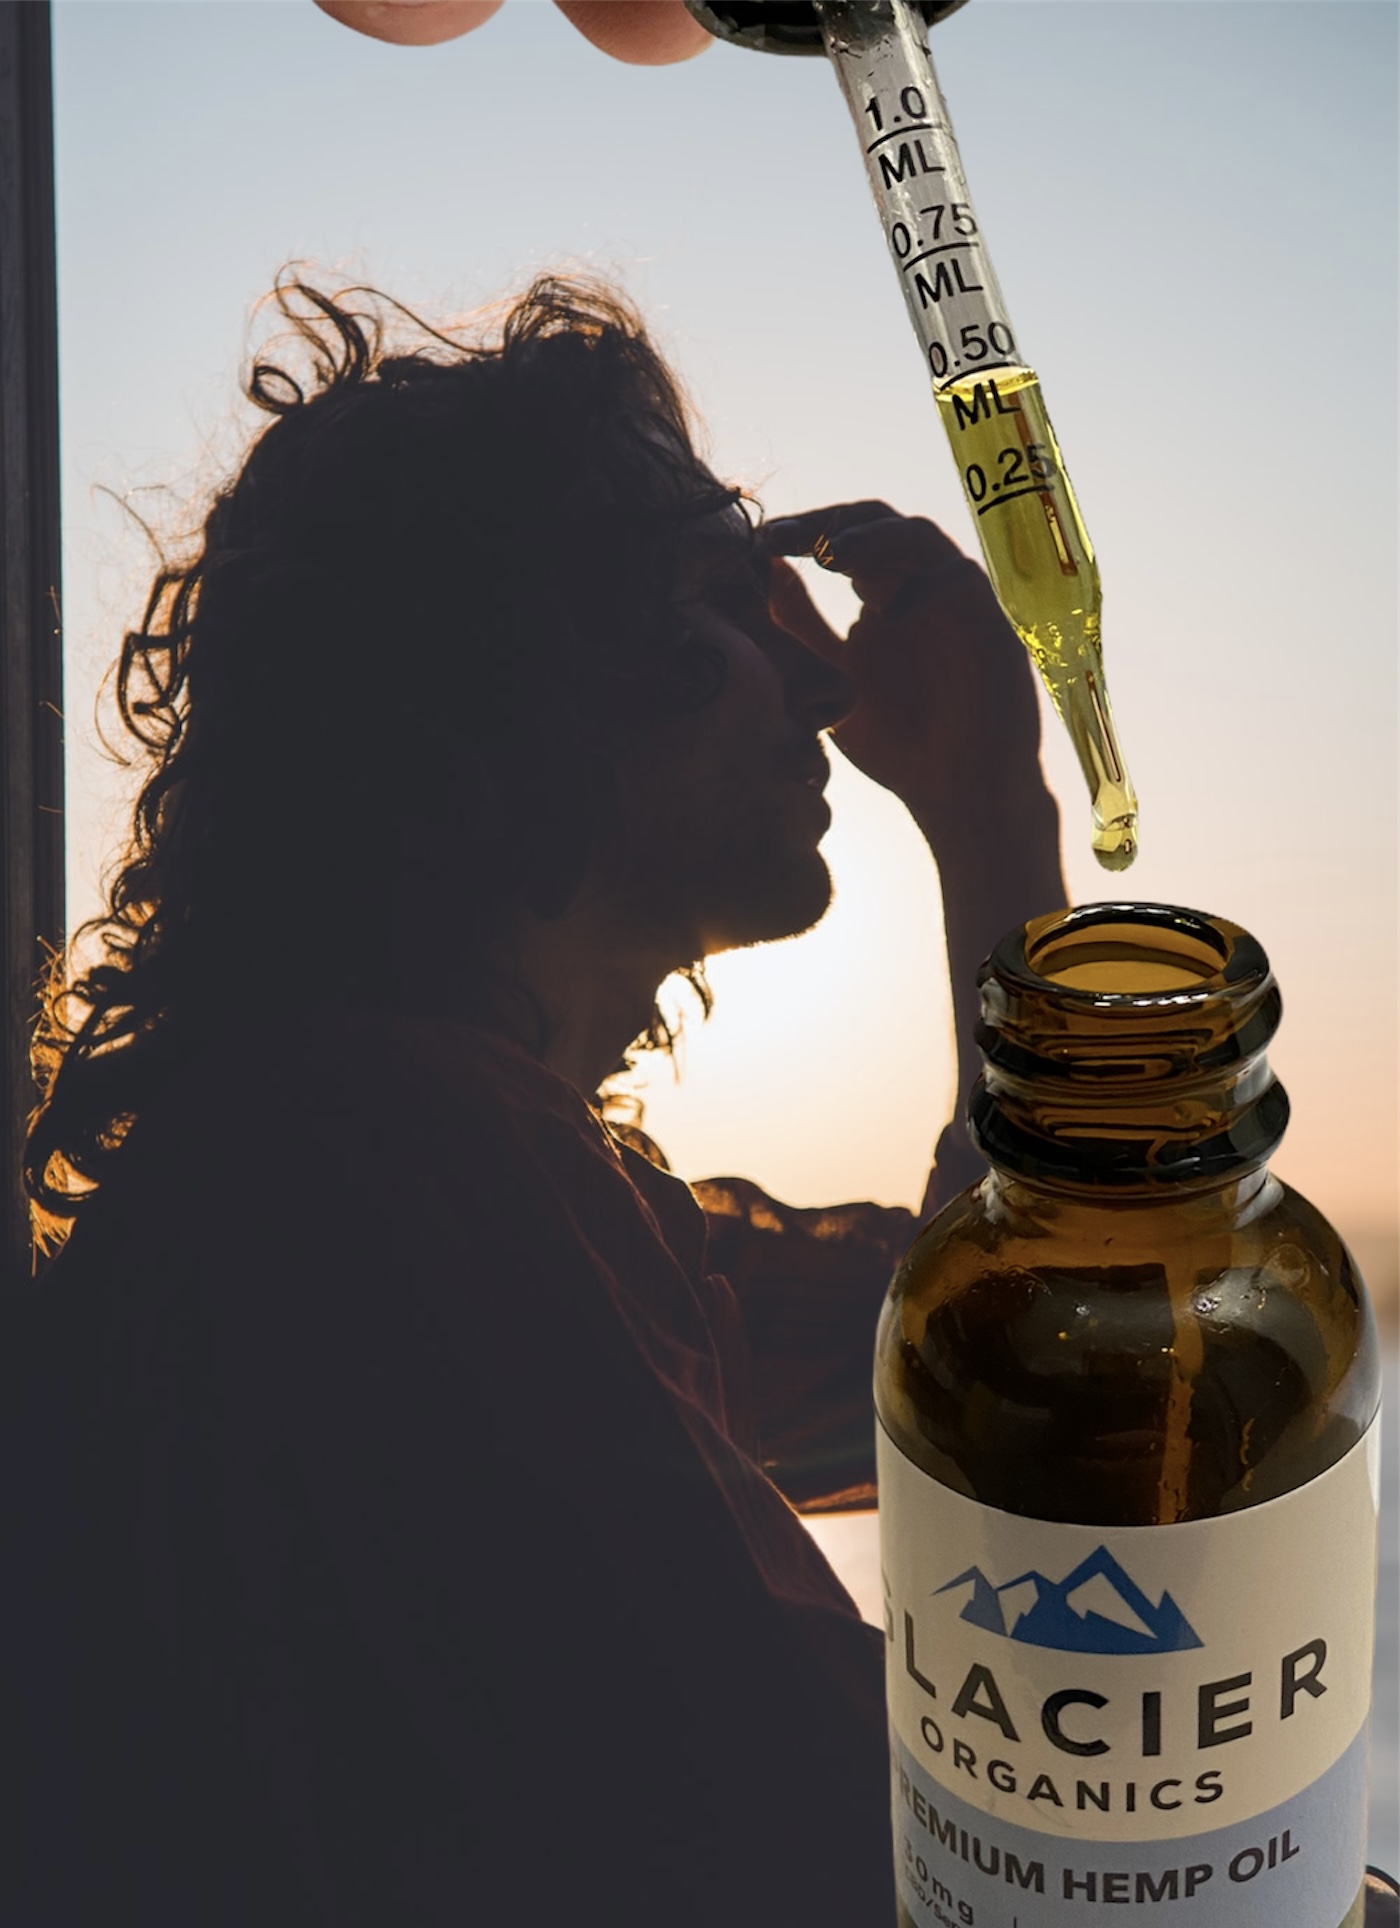 How to use CBD Oil for Anxiety?